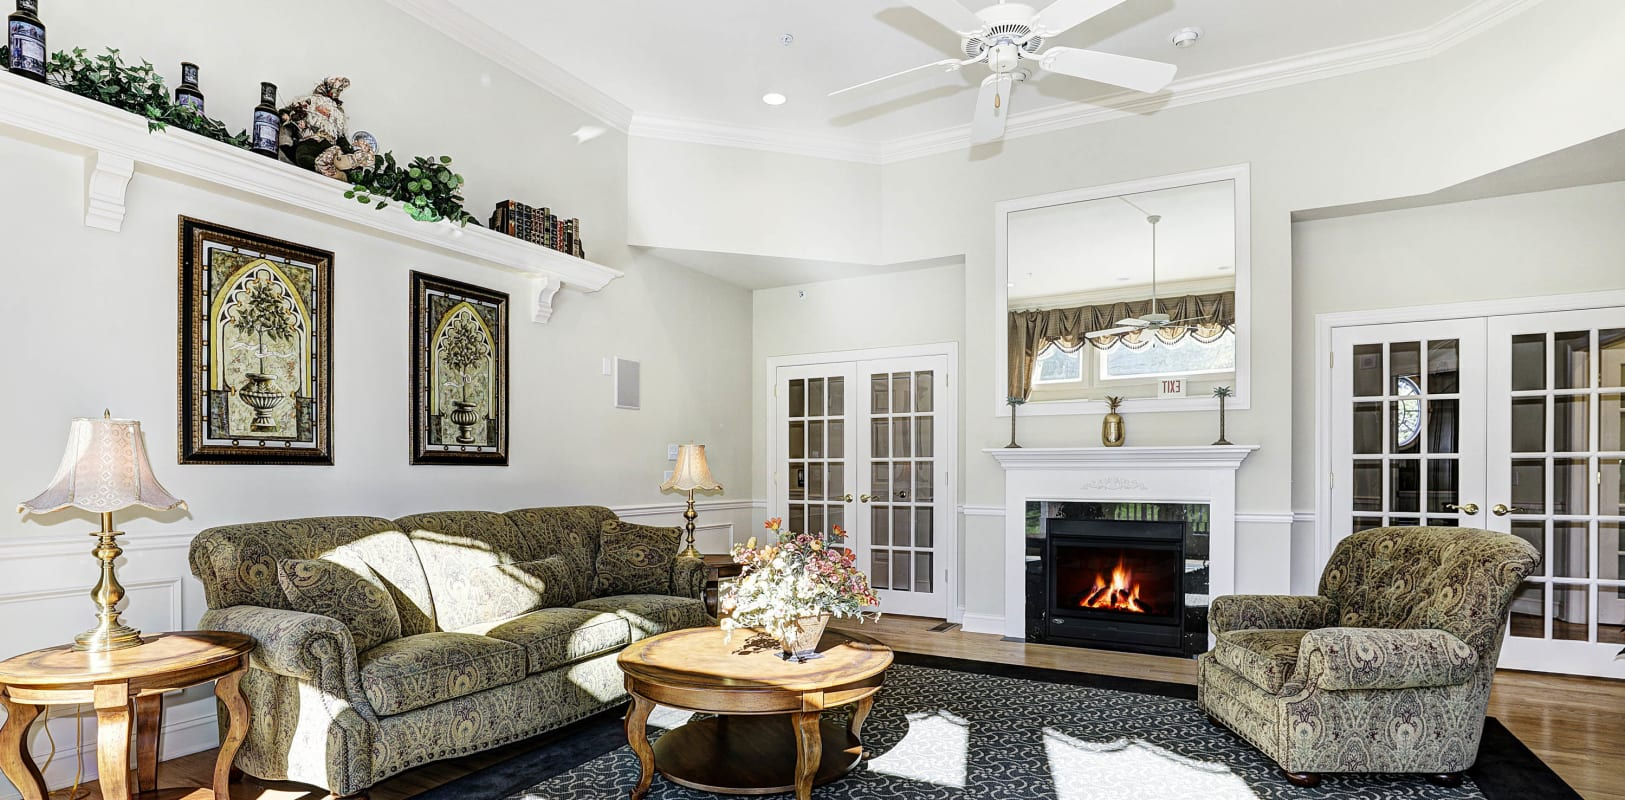 Fireplace in the clubhouse lounge at Hanover Glen in Bethlehem, Pennsylvania